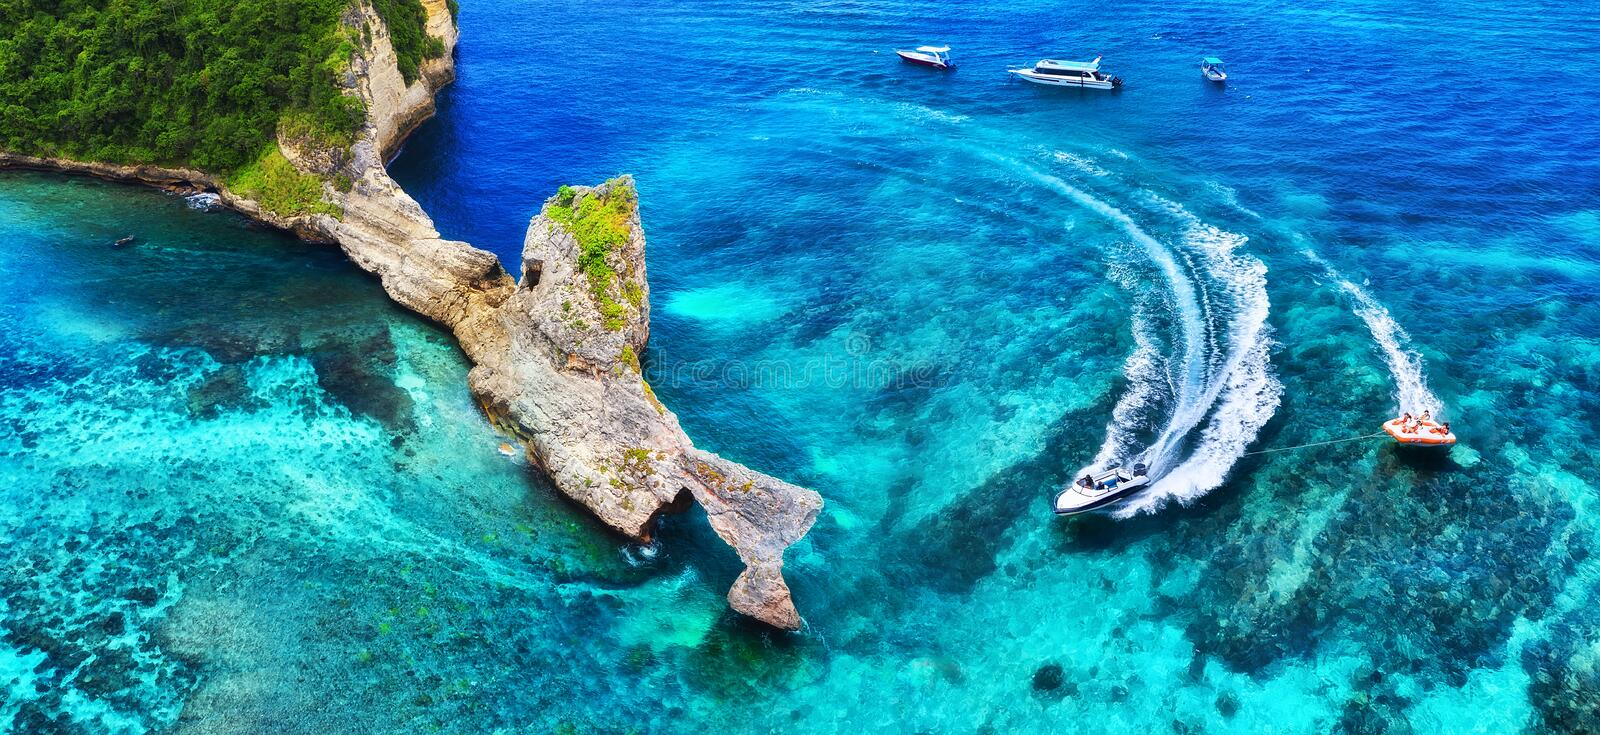 Fast boat at the sea in Bali, Indonesia. Aerial view of luxury floating boat on transparent turquoise water at sunny day. Panorami. C seascape from air. Top view stock image